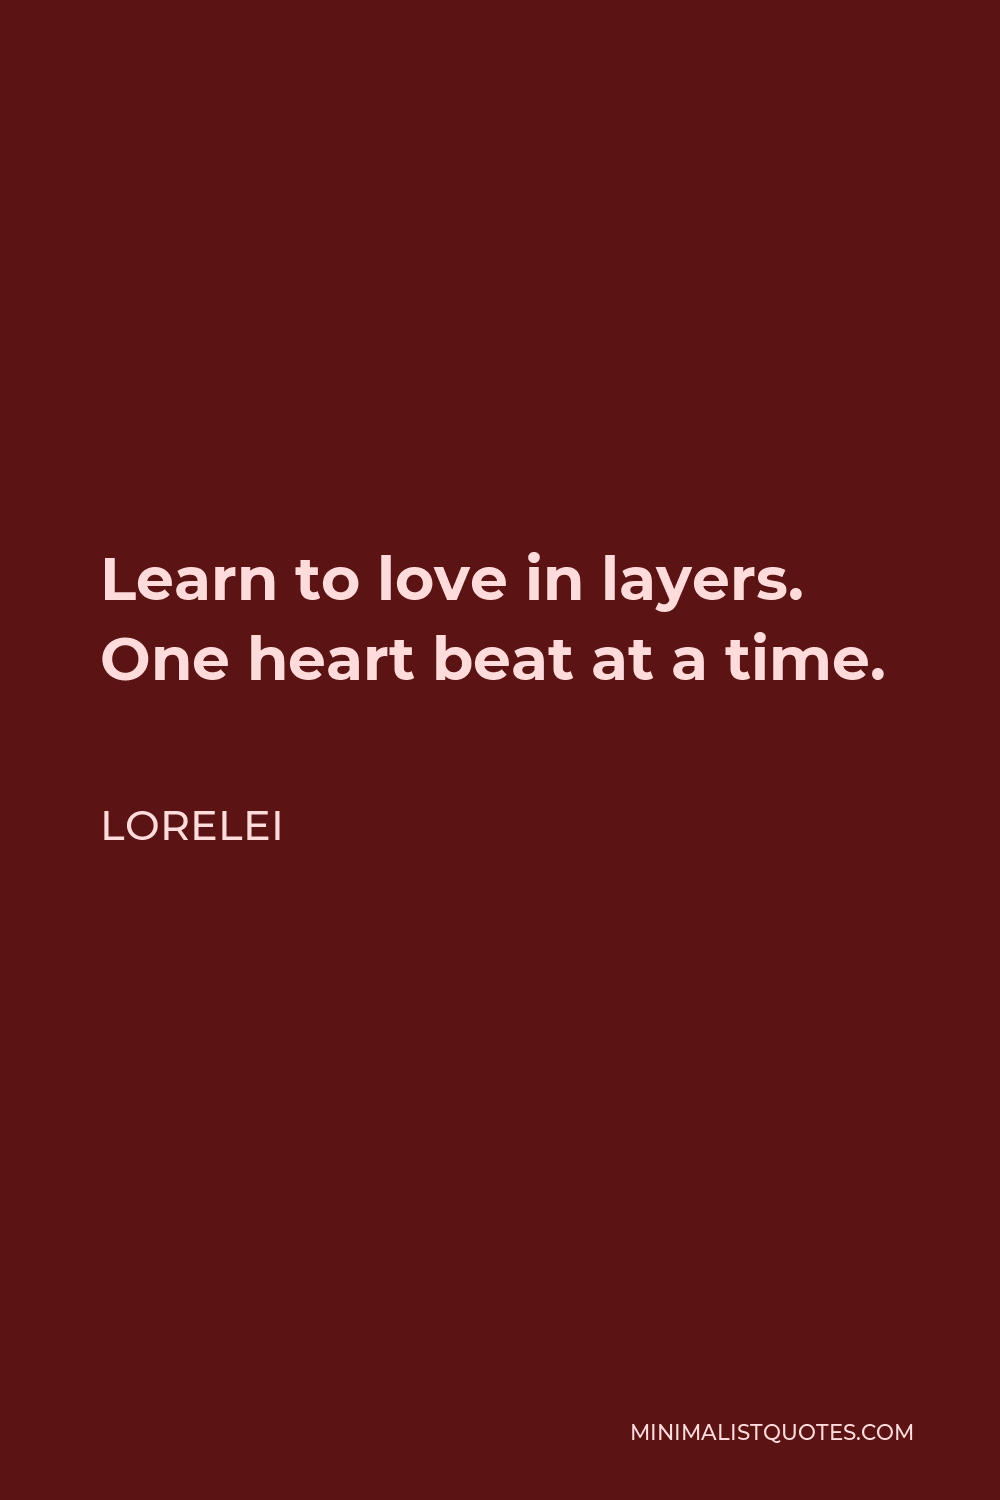 Lorelei Quote - Learn to love in layers. One heart beat at a time.